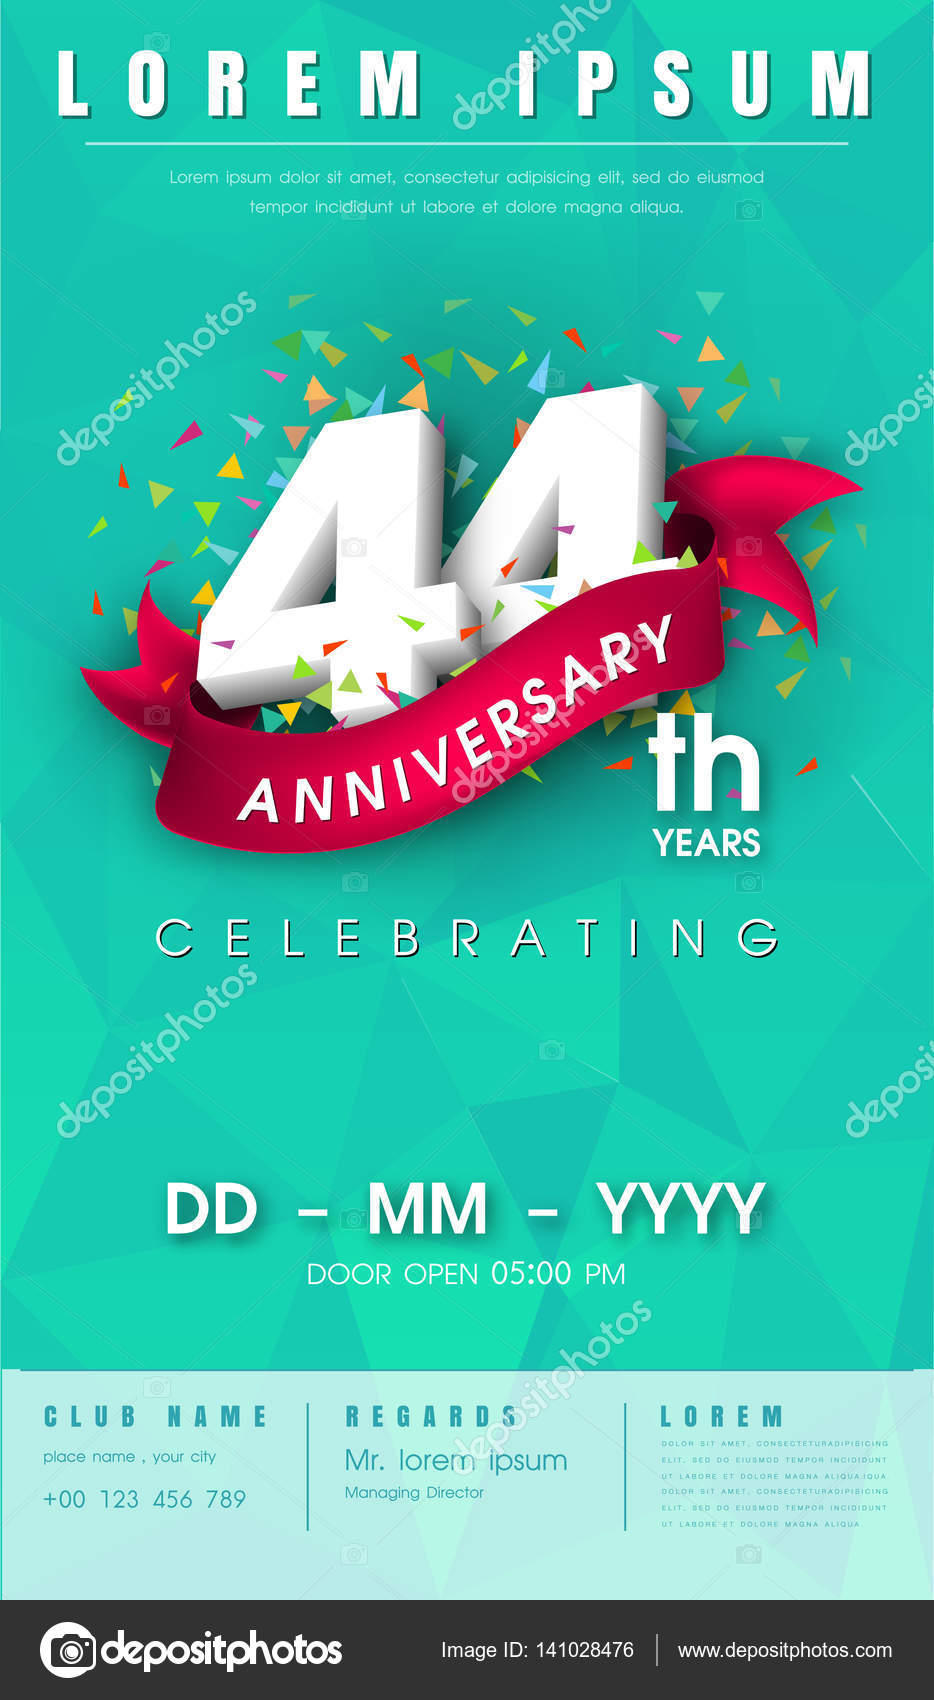 Anniversary invitation card or emblem template design vetor de 44 years anniversary invitation card or emblem celebration template design 44th anniversary modern design elements with background polygon and pink stopboris Image collections